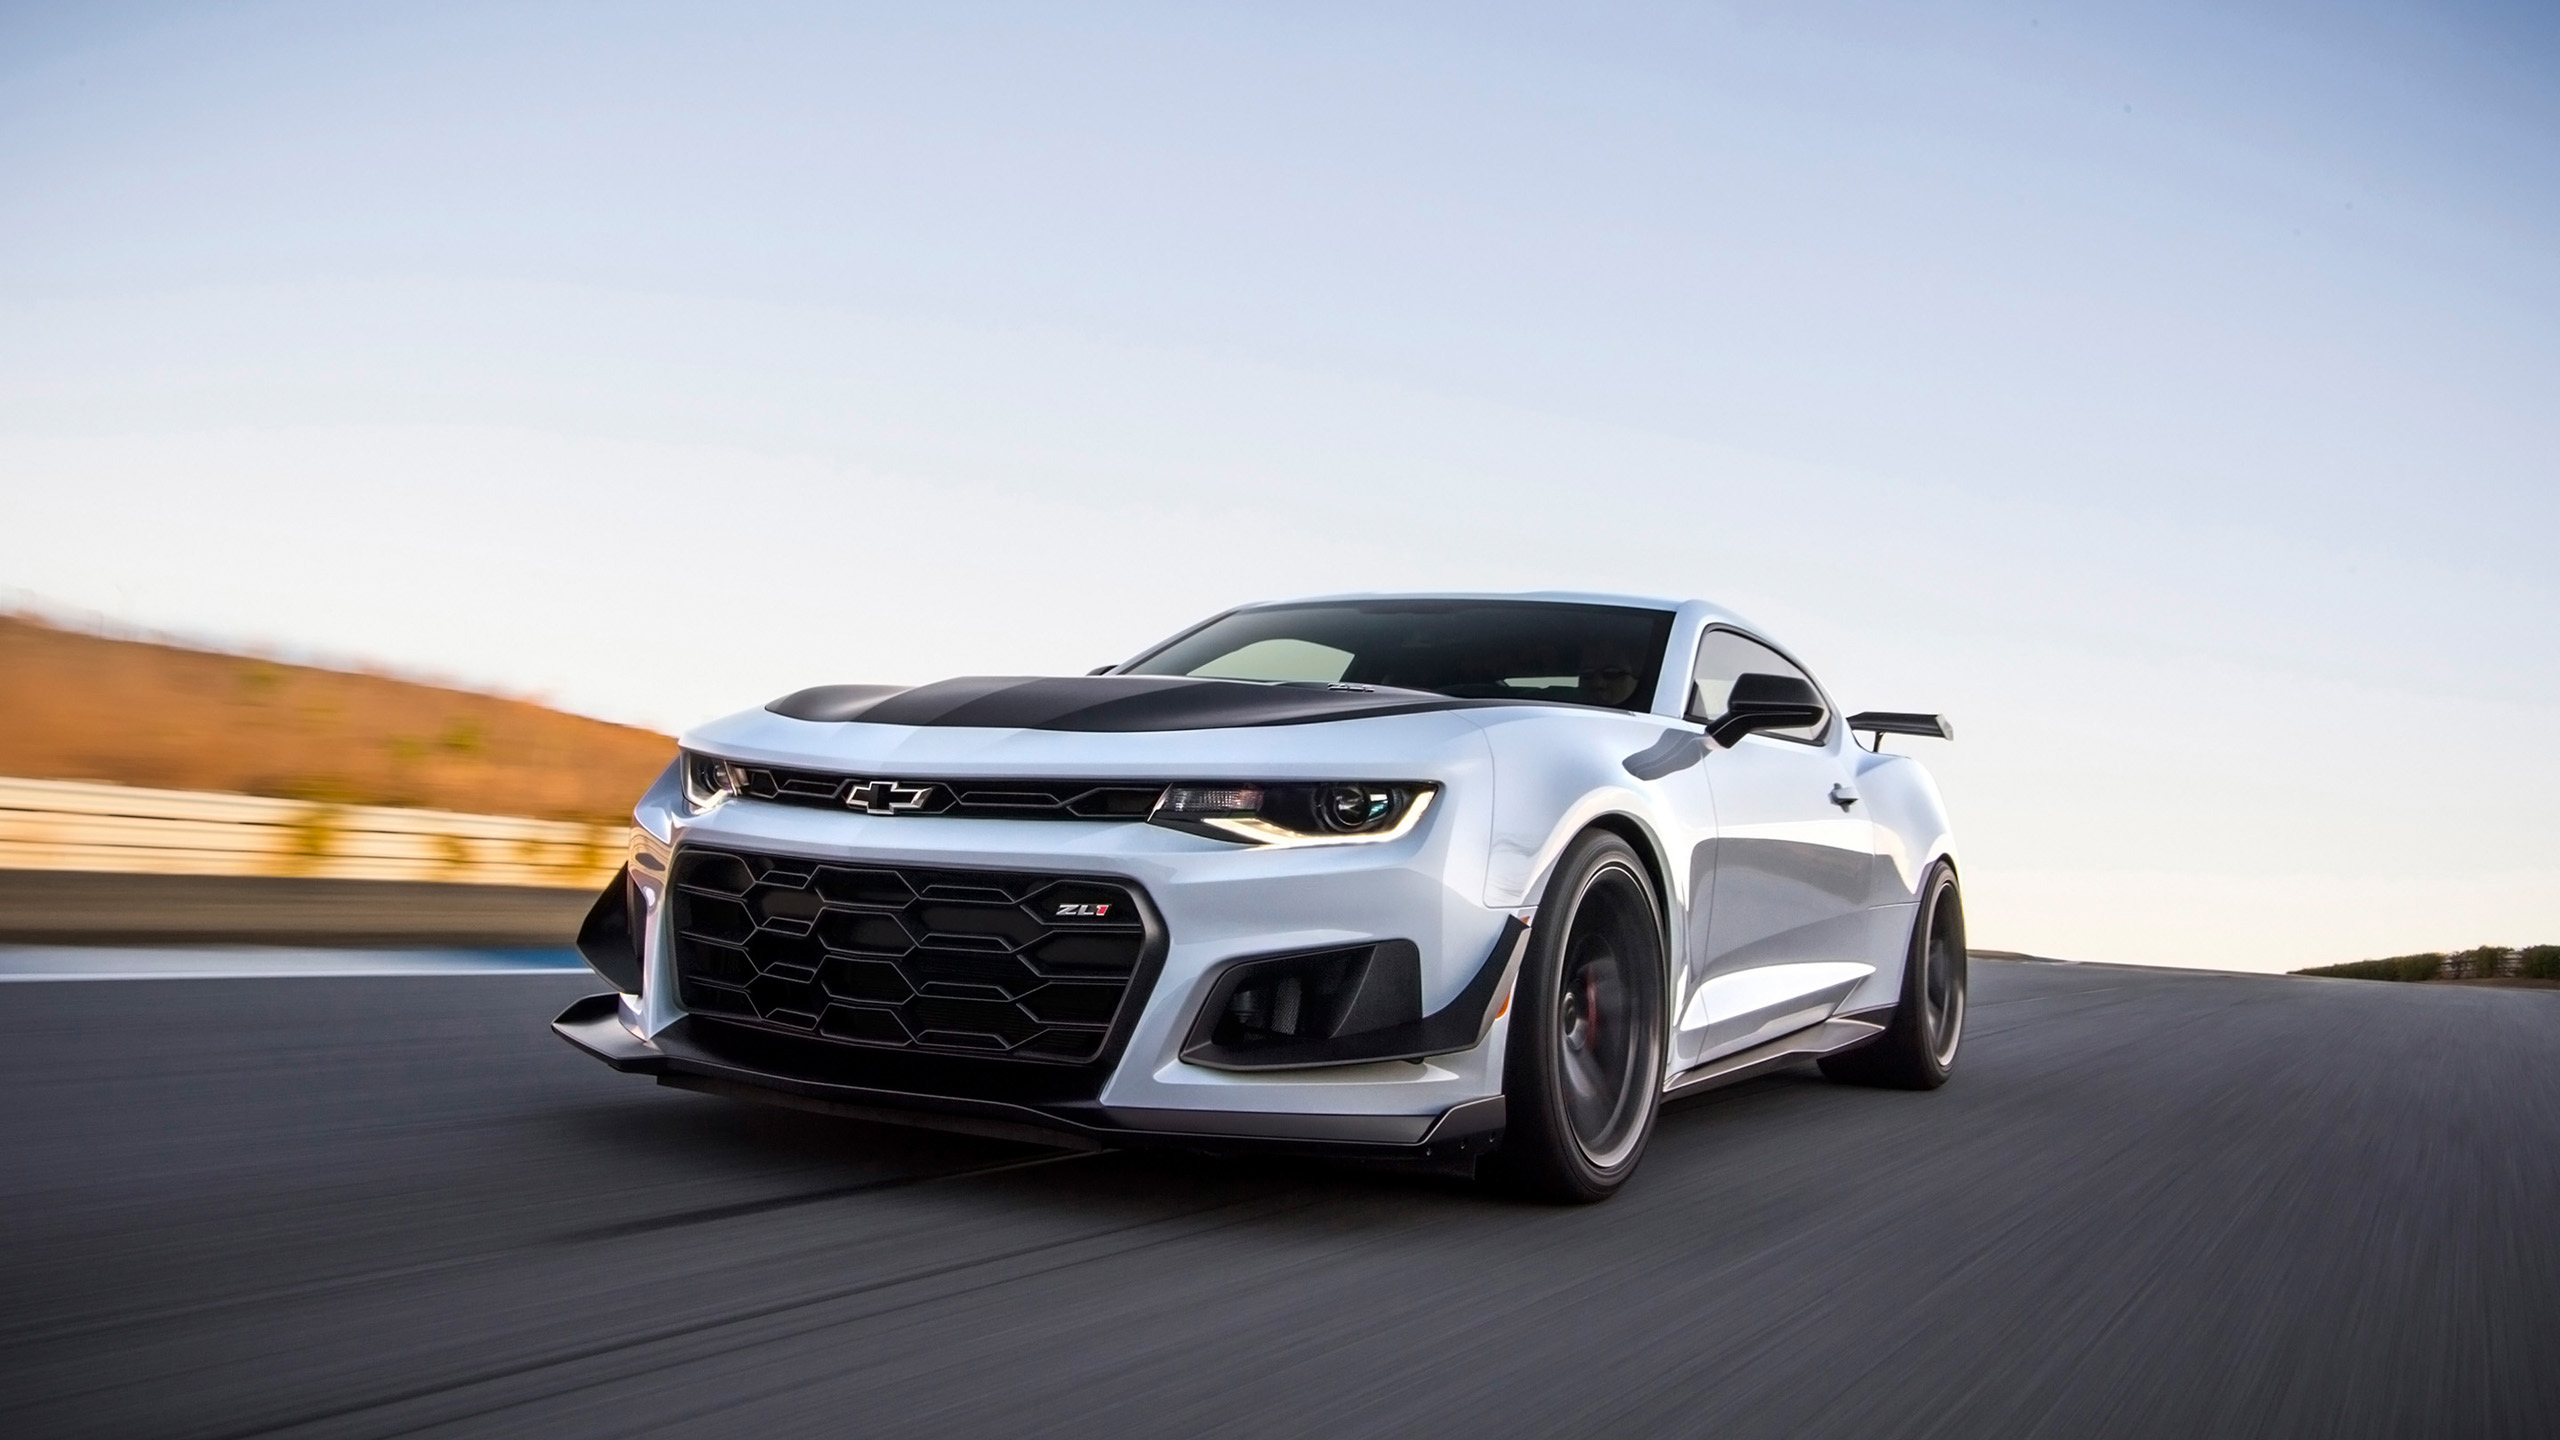 2018 Chevrolet Camaro Zl1 1le Wallpaper Hd Car Wallpapers Id 7667